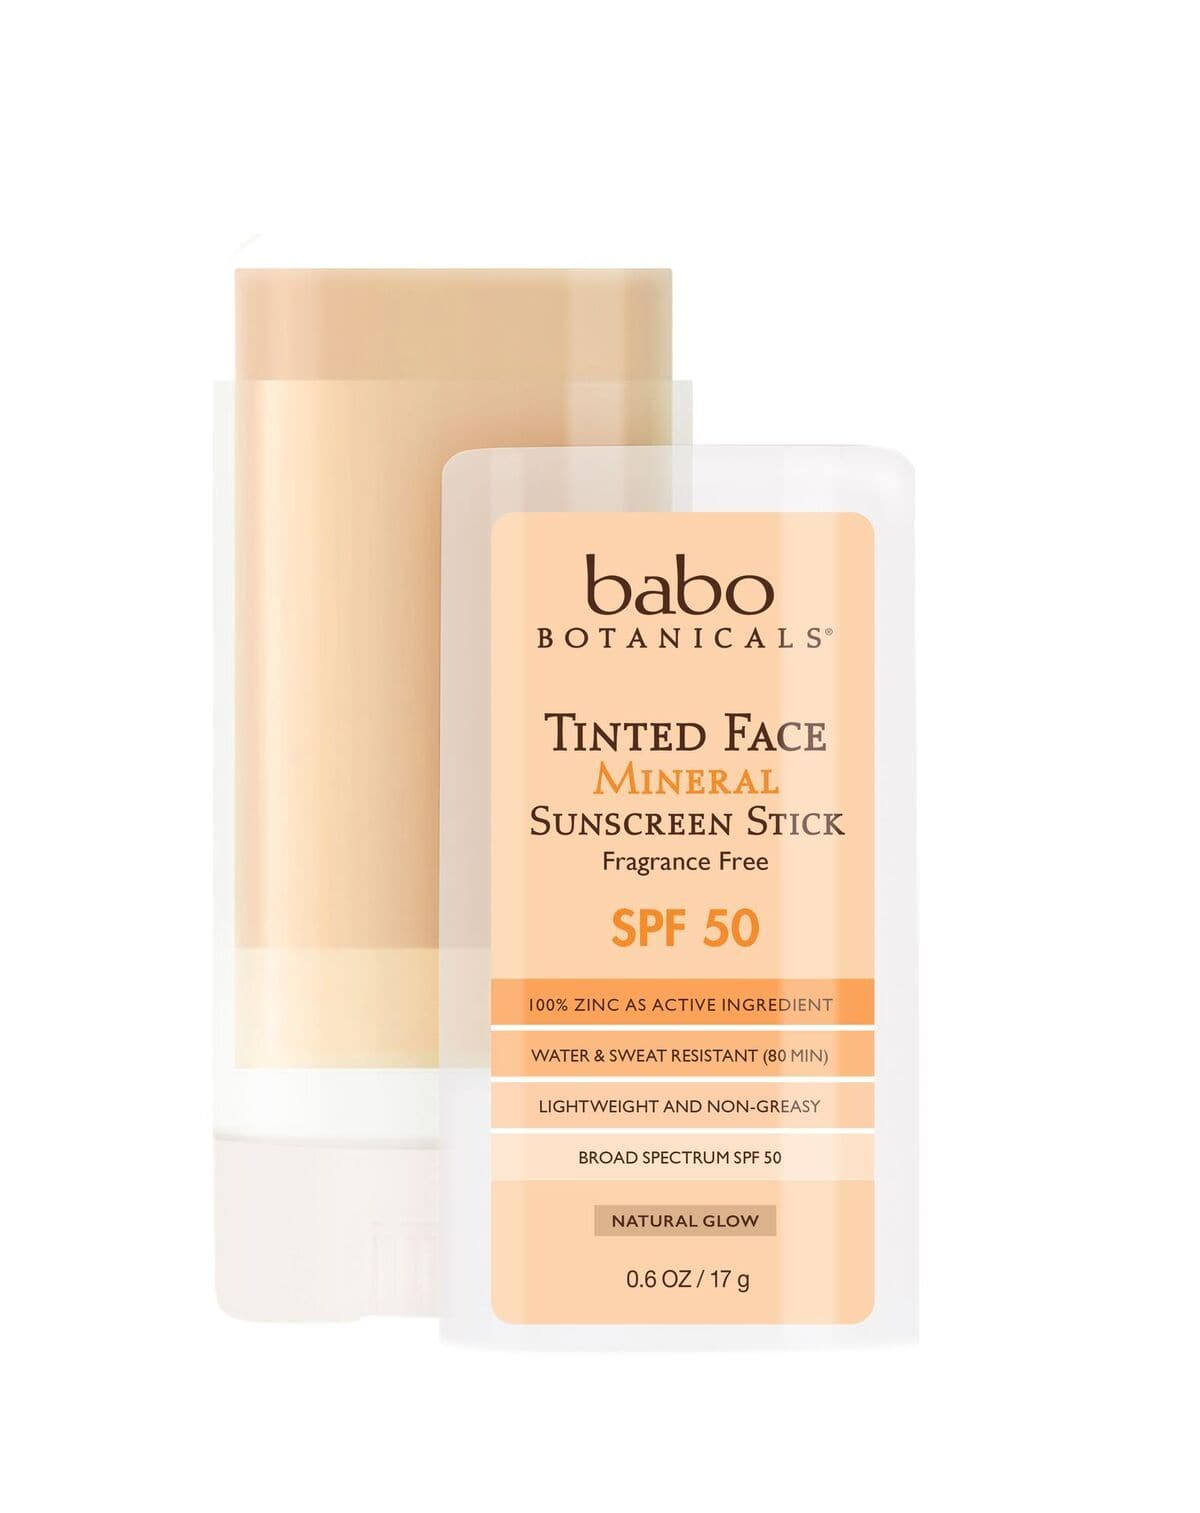 Tinted Face Natural Glow Mineral Stick - SPF 50, Fragrance Free, .6 OZ - Bundle (2 Pack)